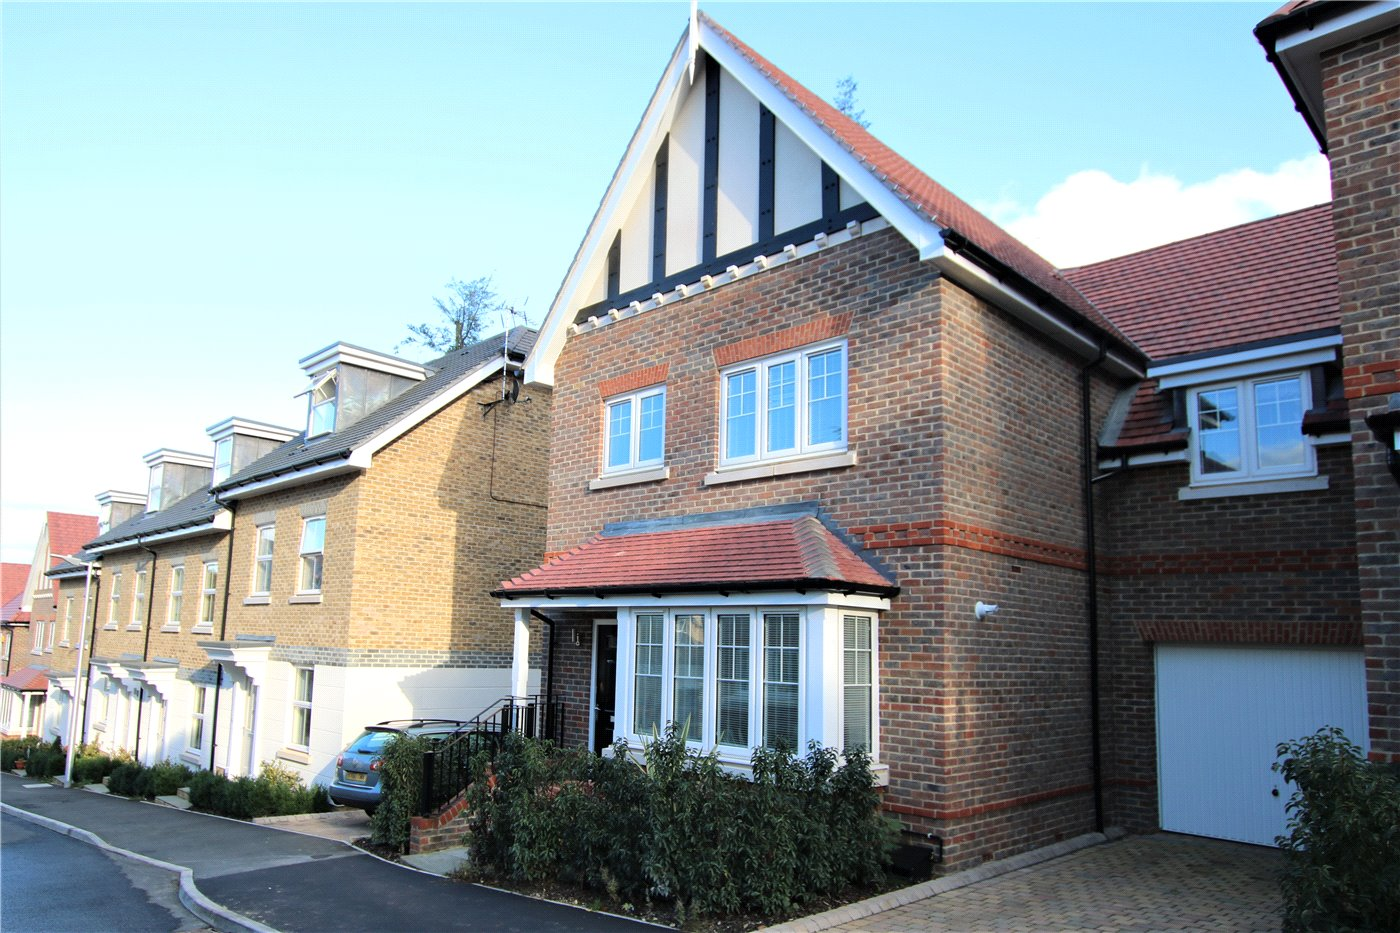 3 Bedrooms End Of Terrace House for sale in Rawlins Rise, Purley-On-Thames, Berkshire, RG31